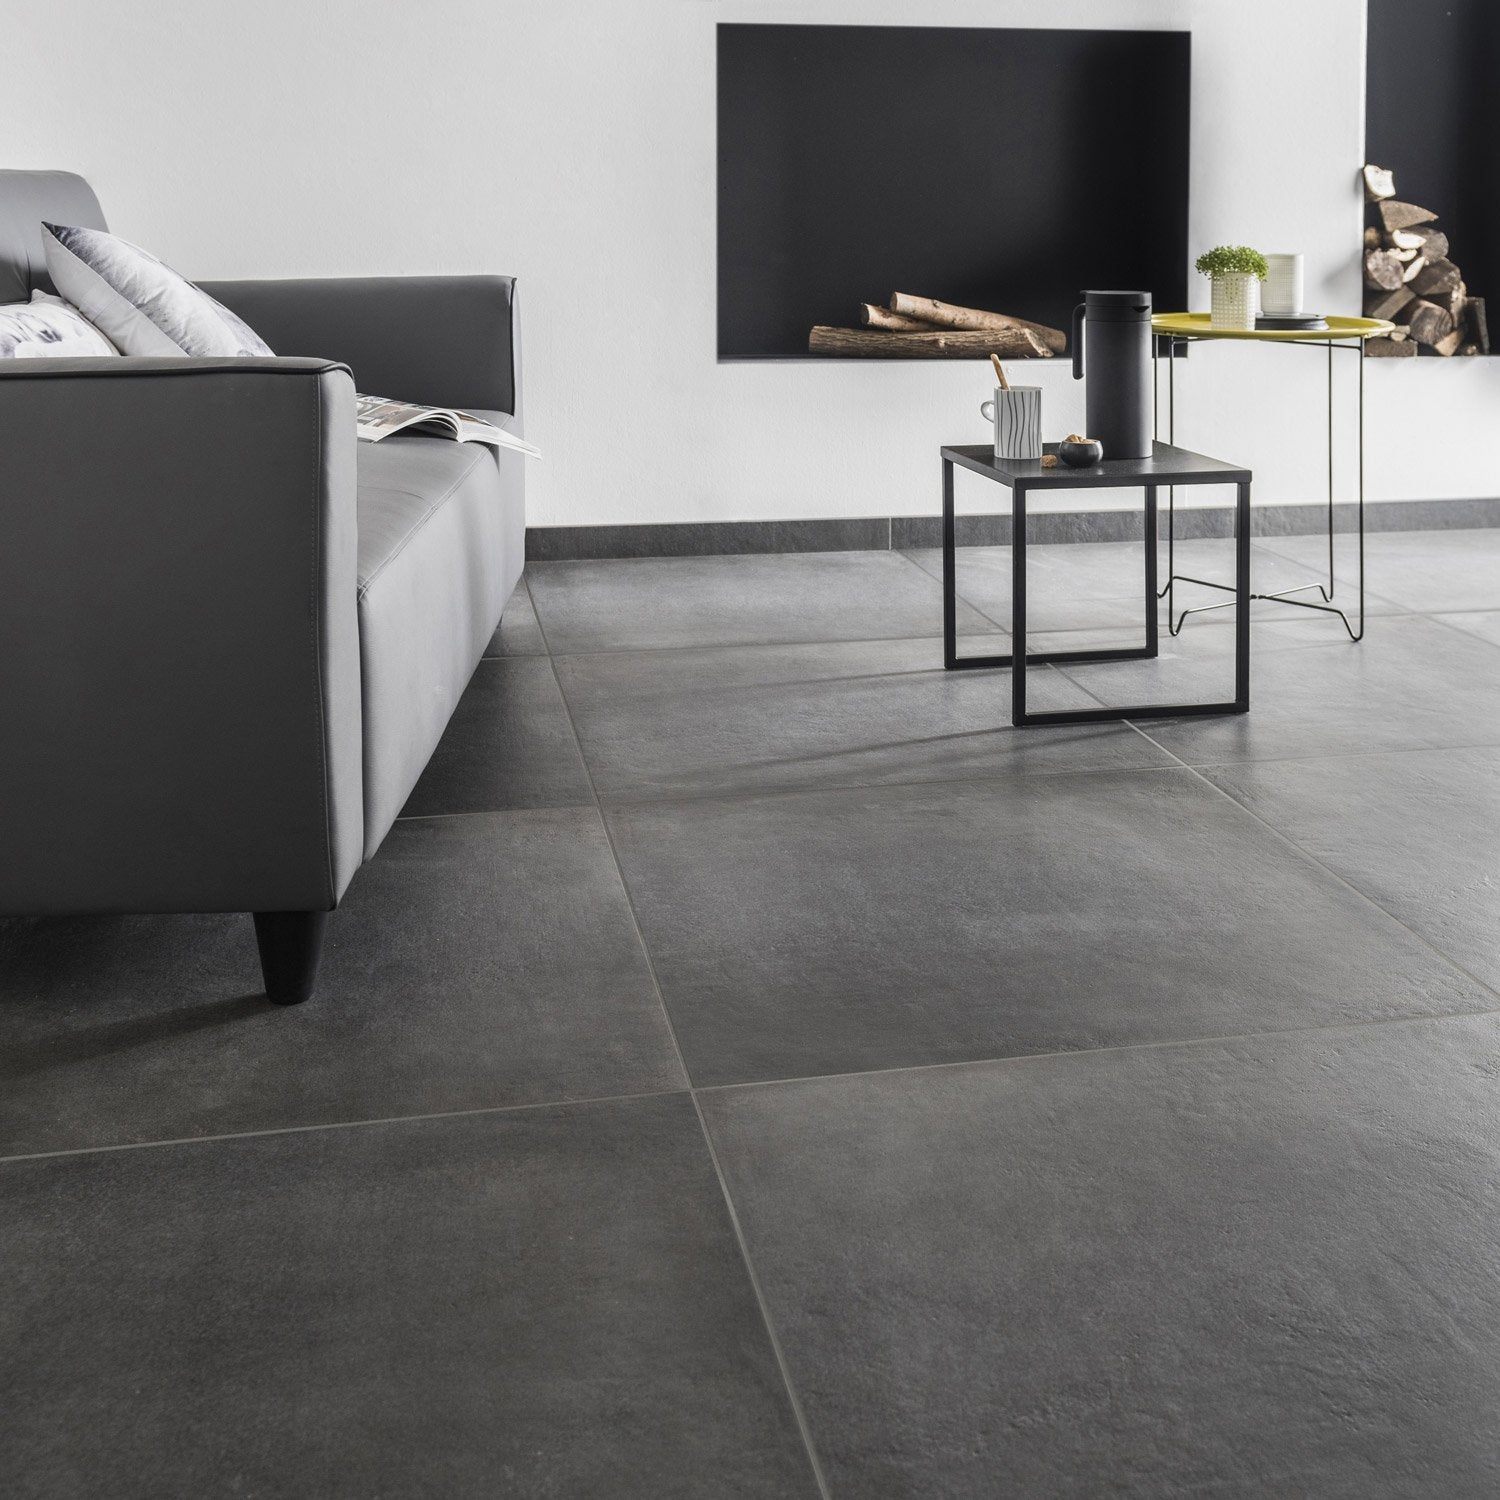 Carrelage sol et mur anthracite effet b ton time x l for Carrelage 60x60 gris anthracite